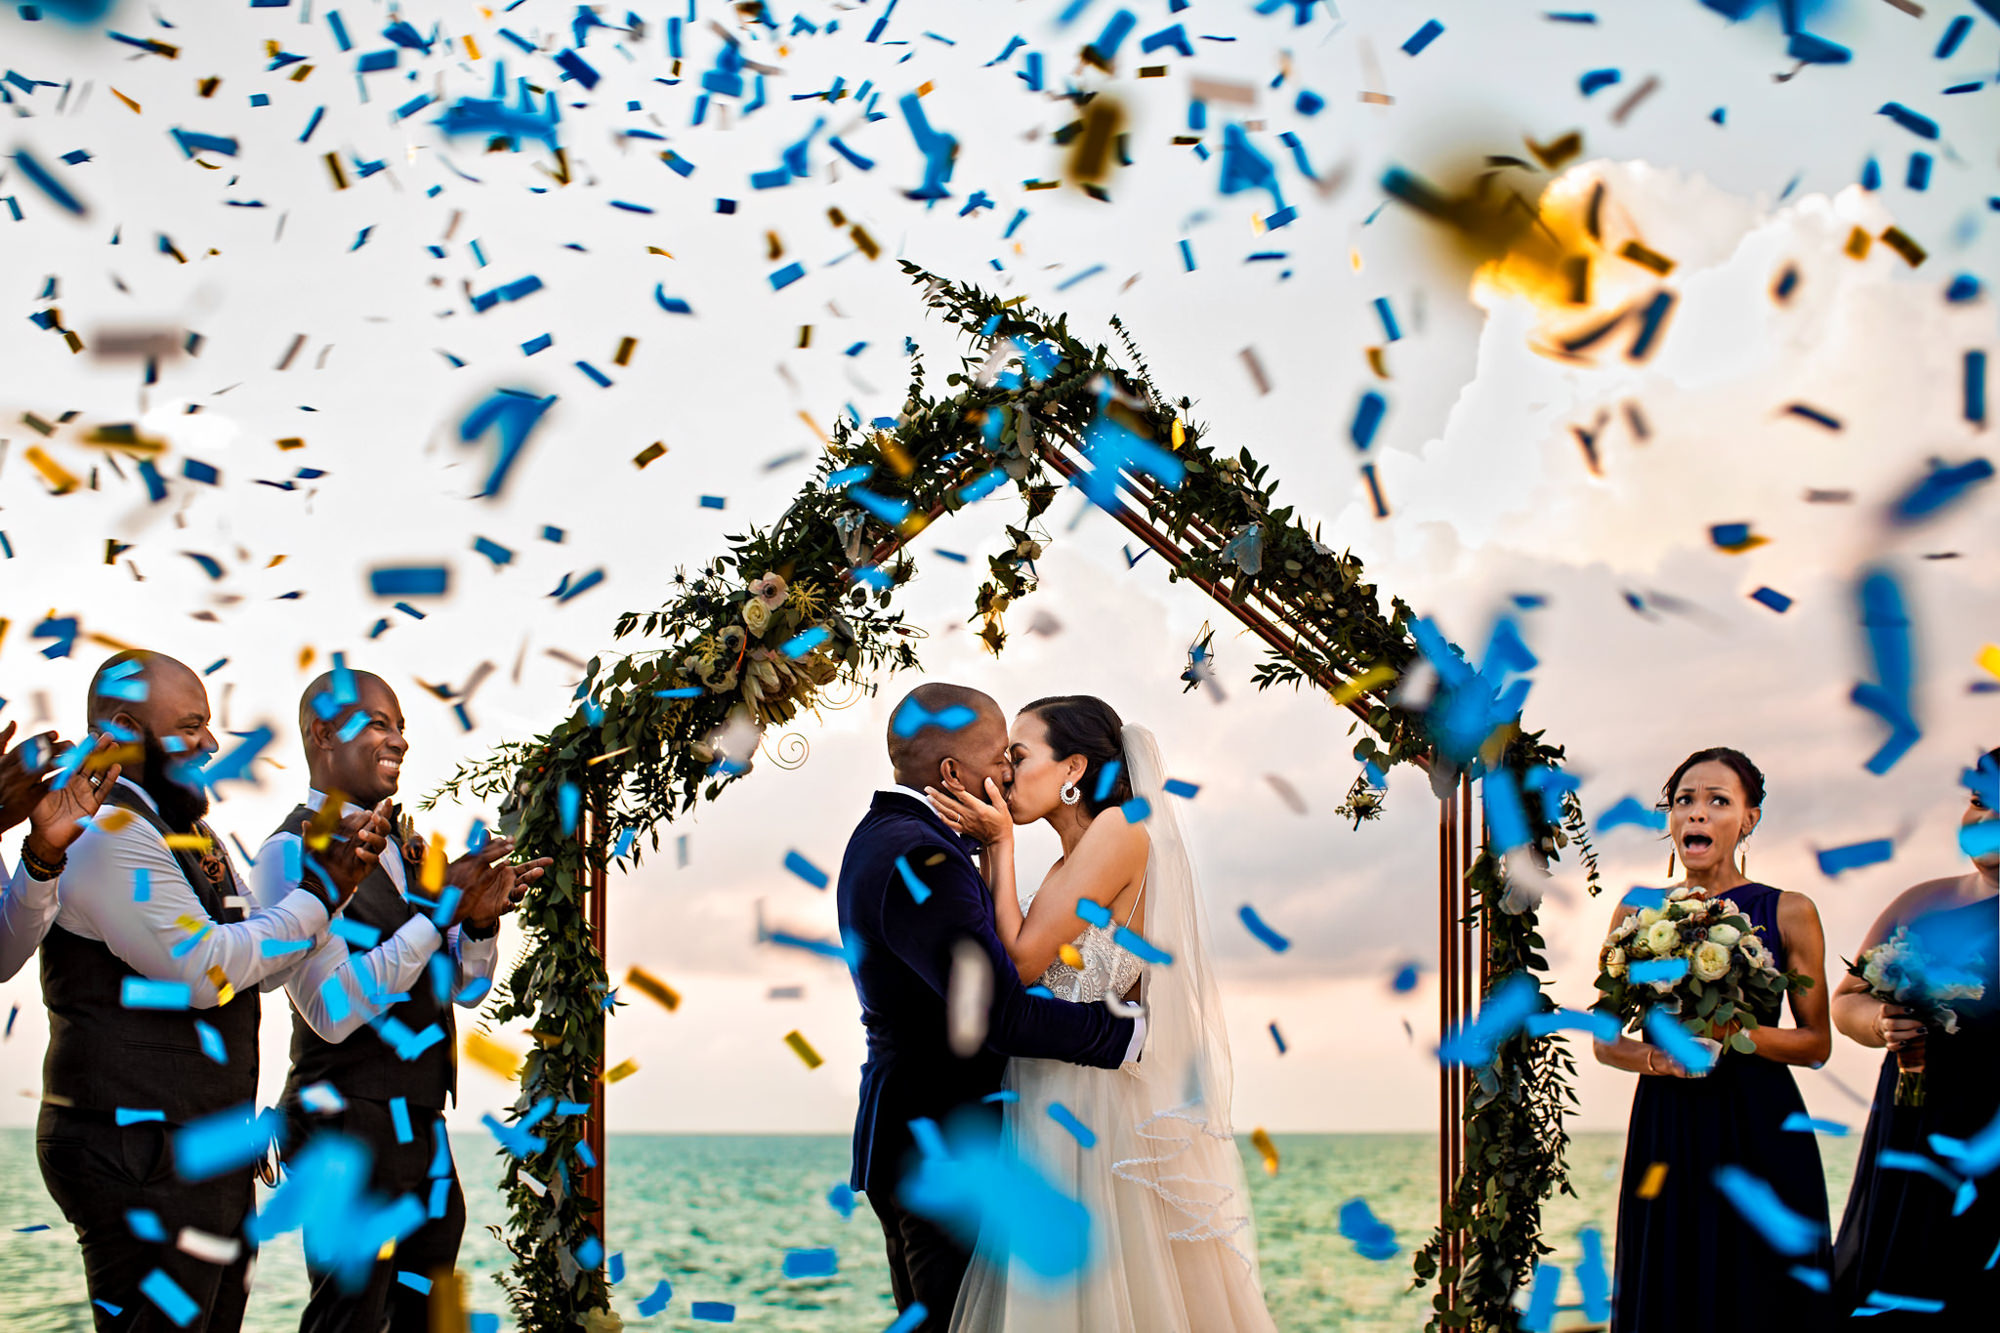 Kissing couple under arbor with confetti - photo by Two Mann Studios